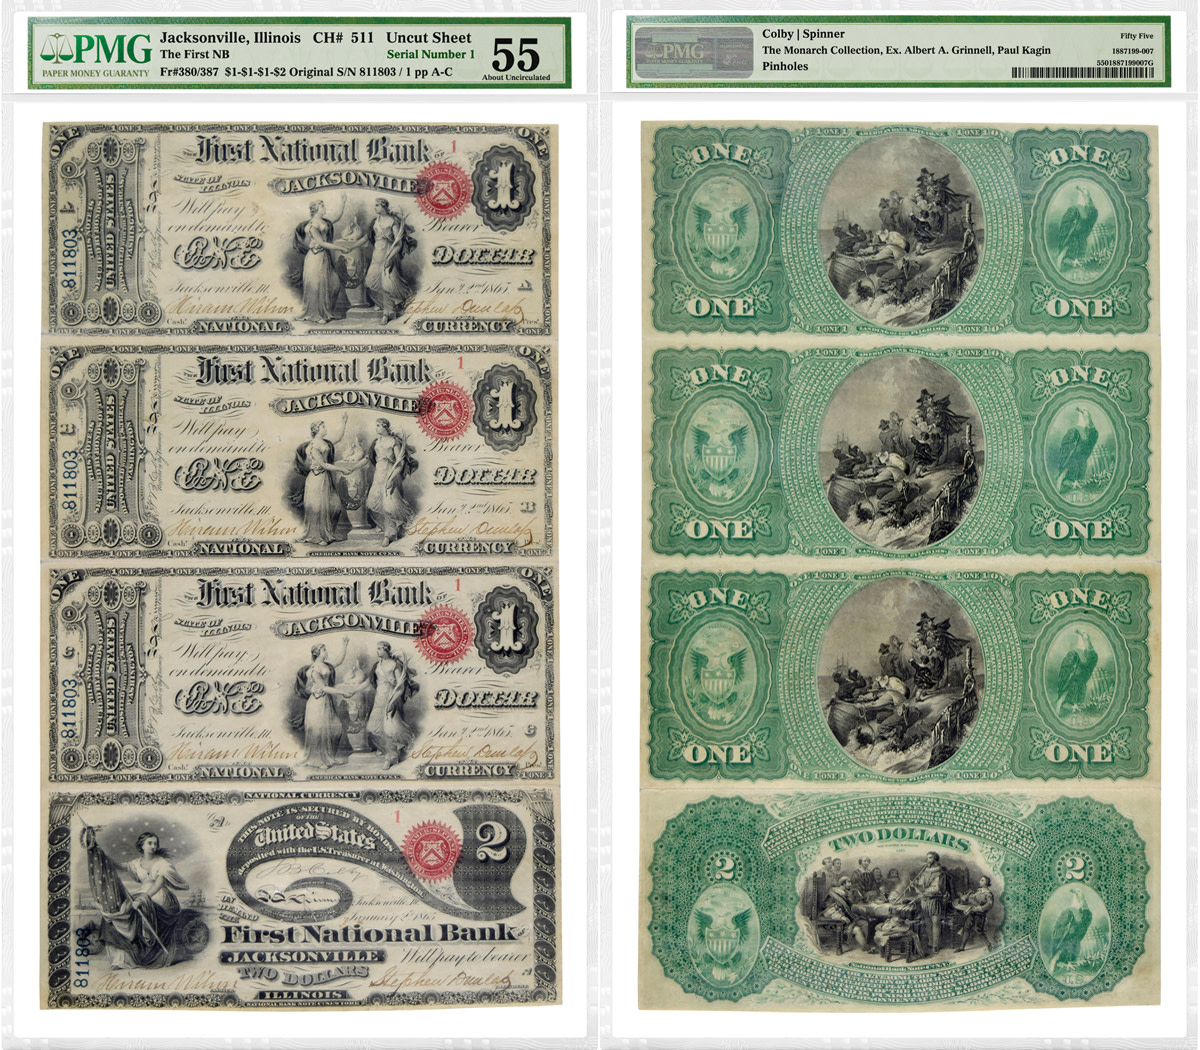 Uncut sheet of four Jacksonville, Ill. First Charter National Bank Notes ($1, $1, $1 and $2) with Serial Number 1, pedigreed to the Grinnell Collection and graded PMG-55 About Uncirculated. (Images courtesy of PMG)